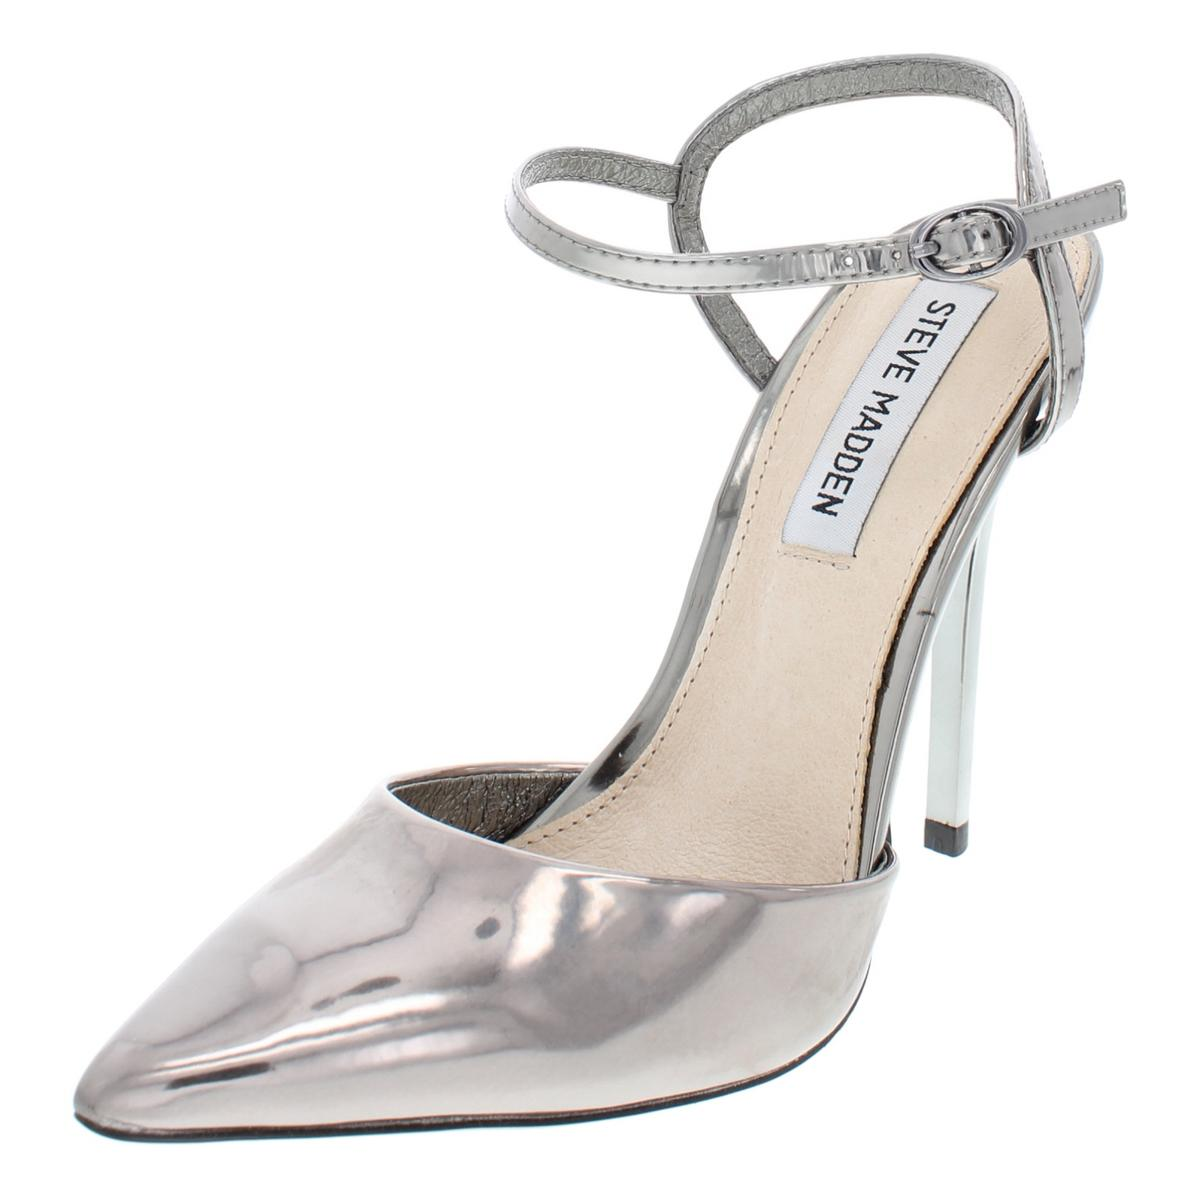 Details about Steve Madden Womens Fantasia Silver Patent Heels Shoes 6  Medium (B